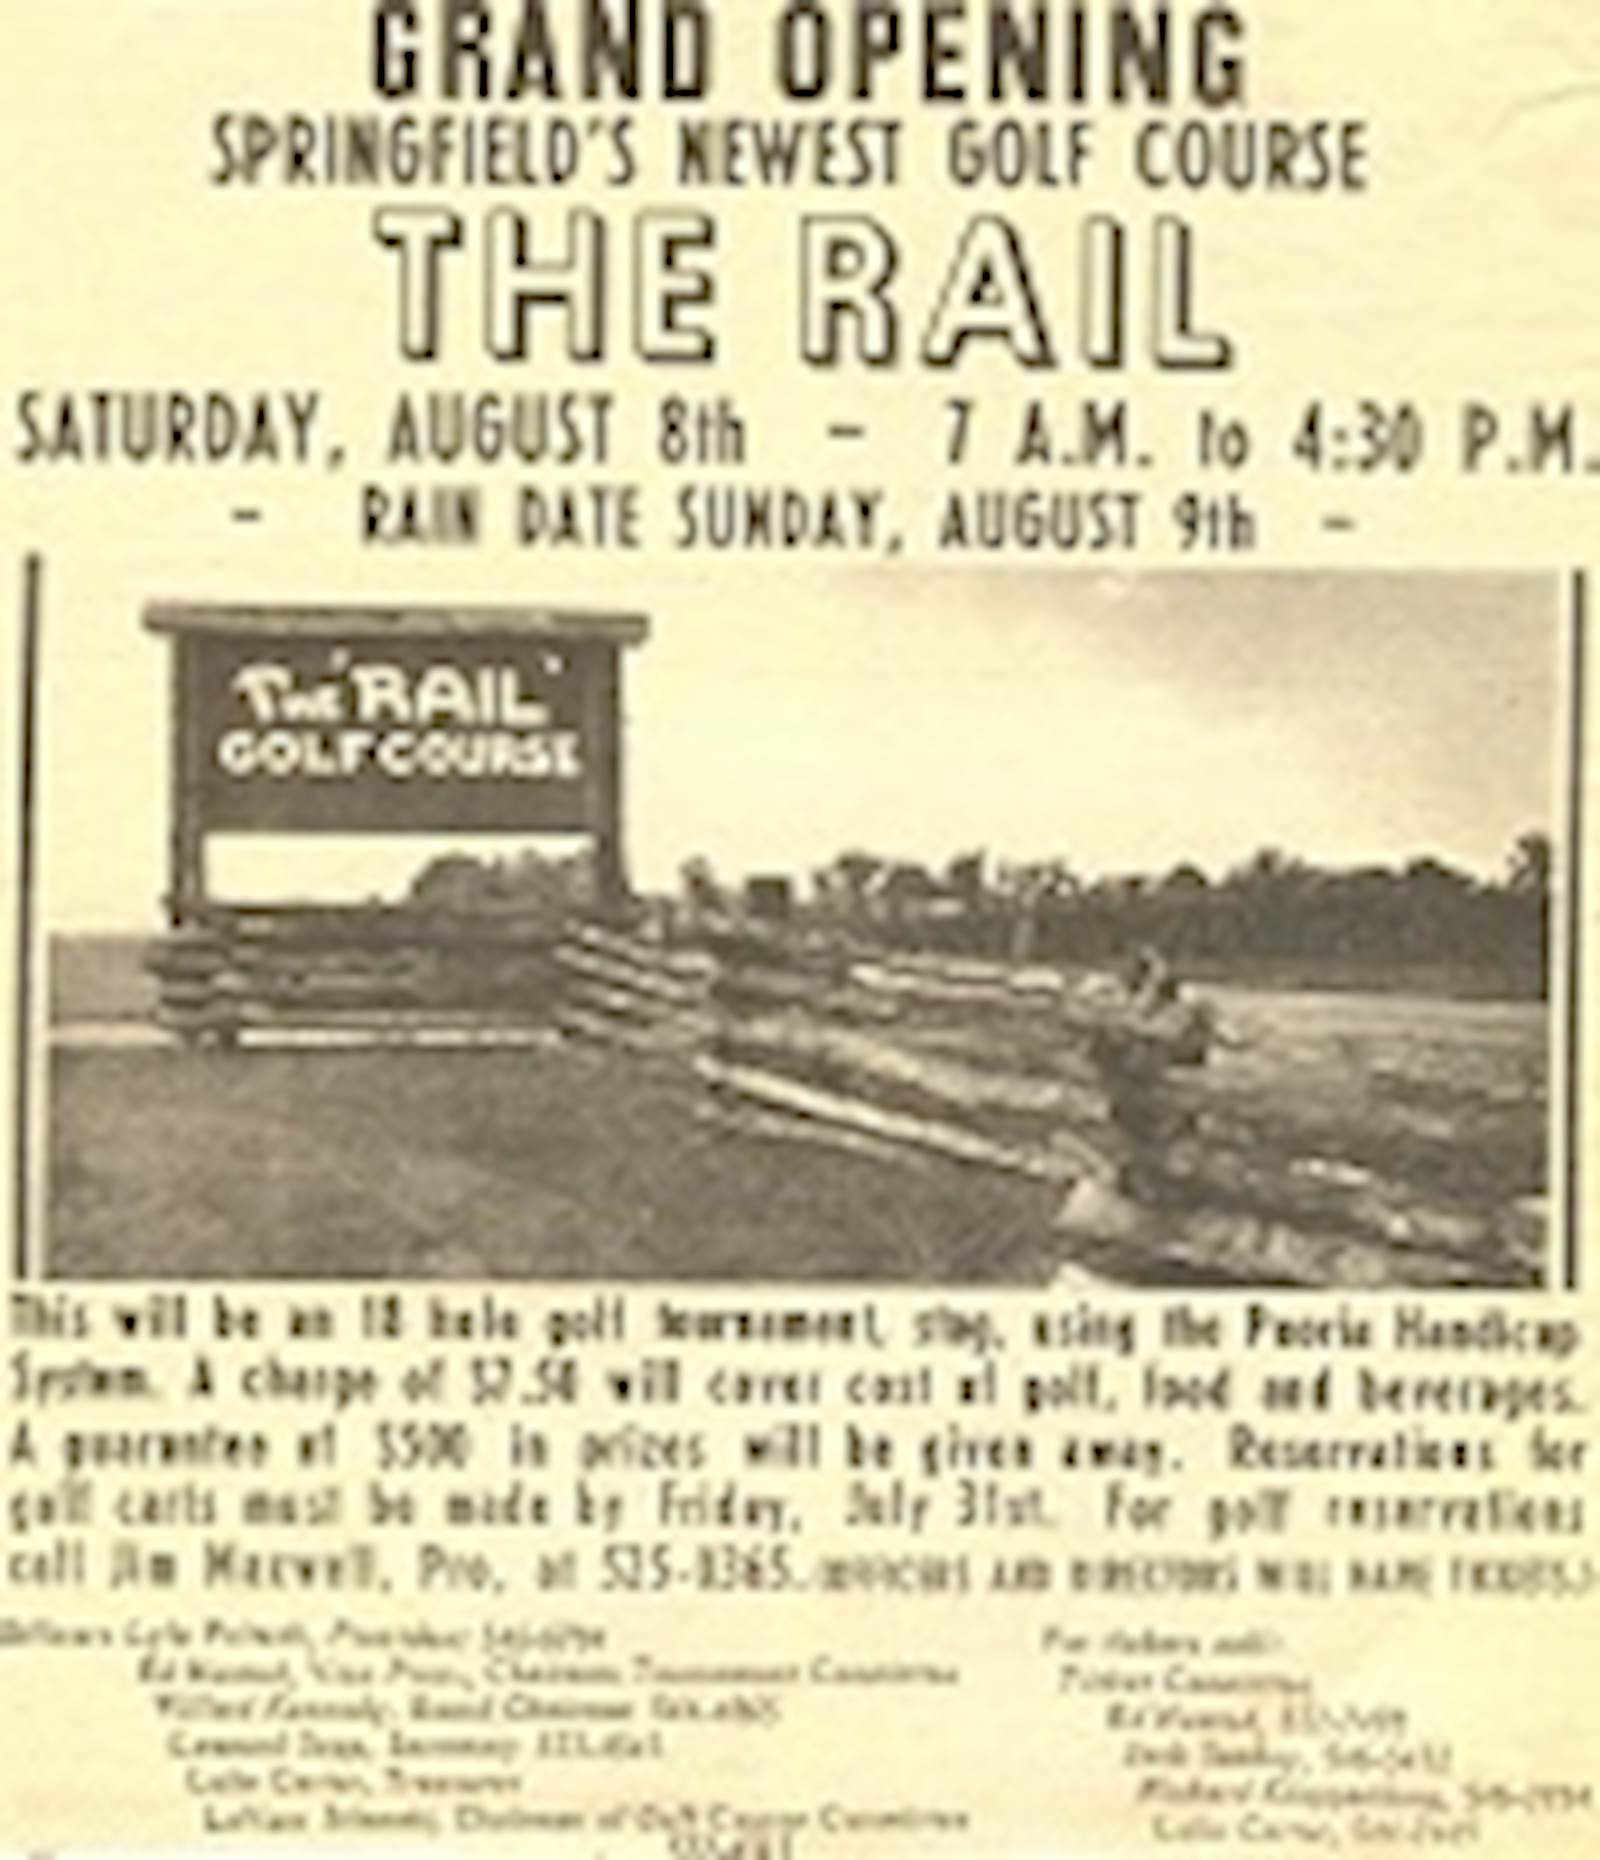 The Grand Opening of the Rail - Village of Sherman, Illinois - image